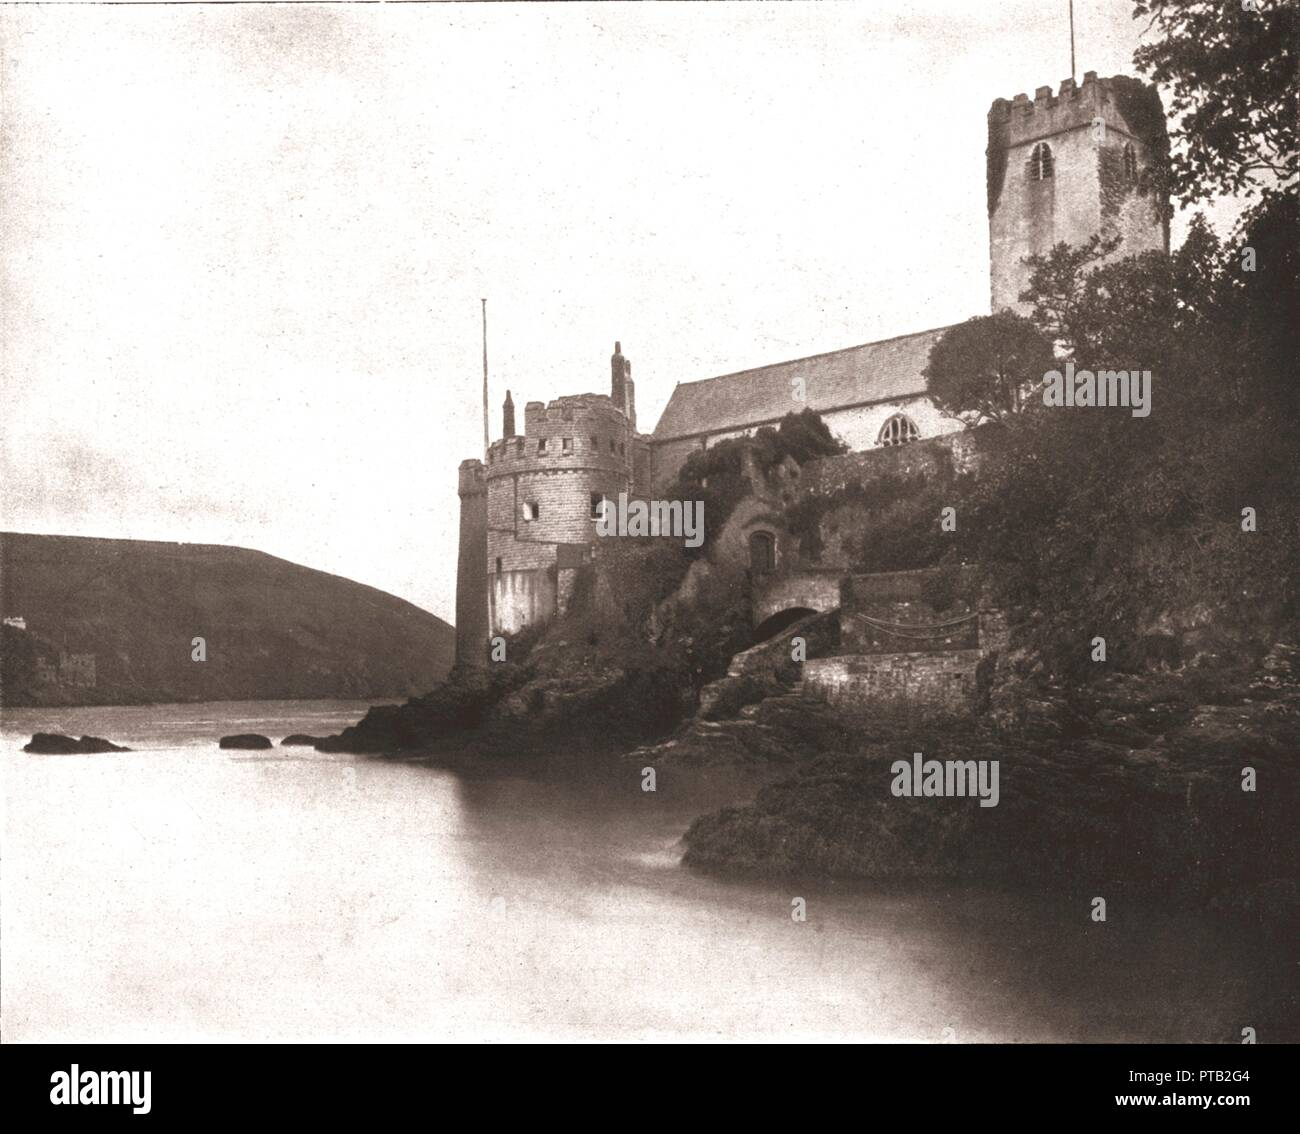 Dartmouth Castle and St Petroc's Church, Devon, 1894. Begun in the late 14th century, the castle stands on a rocky promontory which juts out into the Dart estuary. Built to protect the merchants of Dartmouth, it was one of the earliest castles designed with artillery in mind. From Beautiful Britain; views of our stately homes. [The Werner Company of Chicago, 1894] - Stock Image